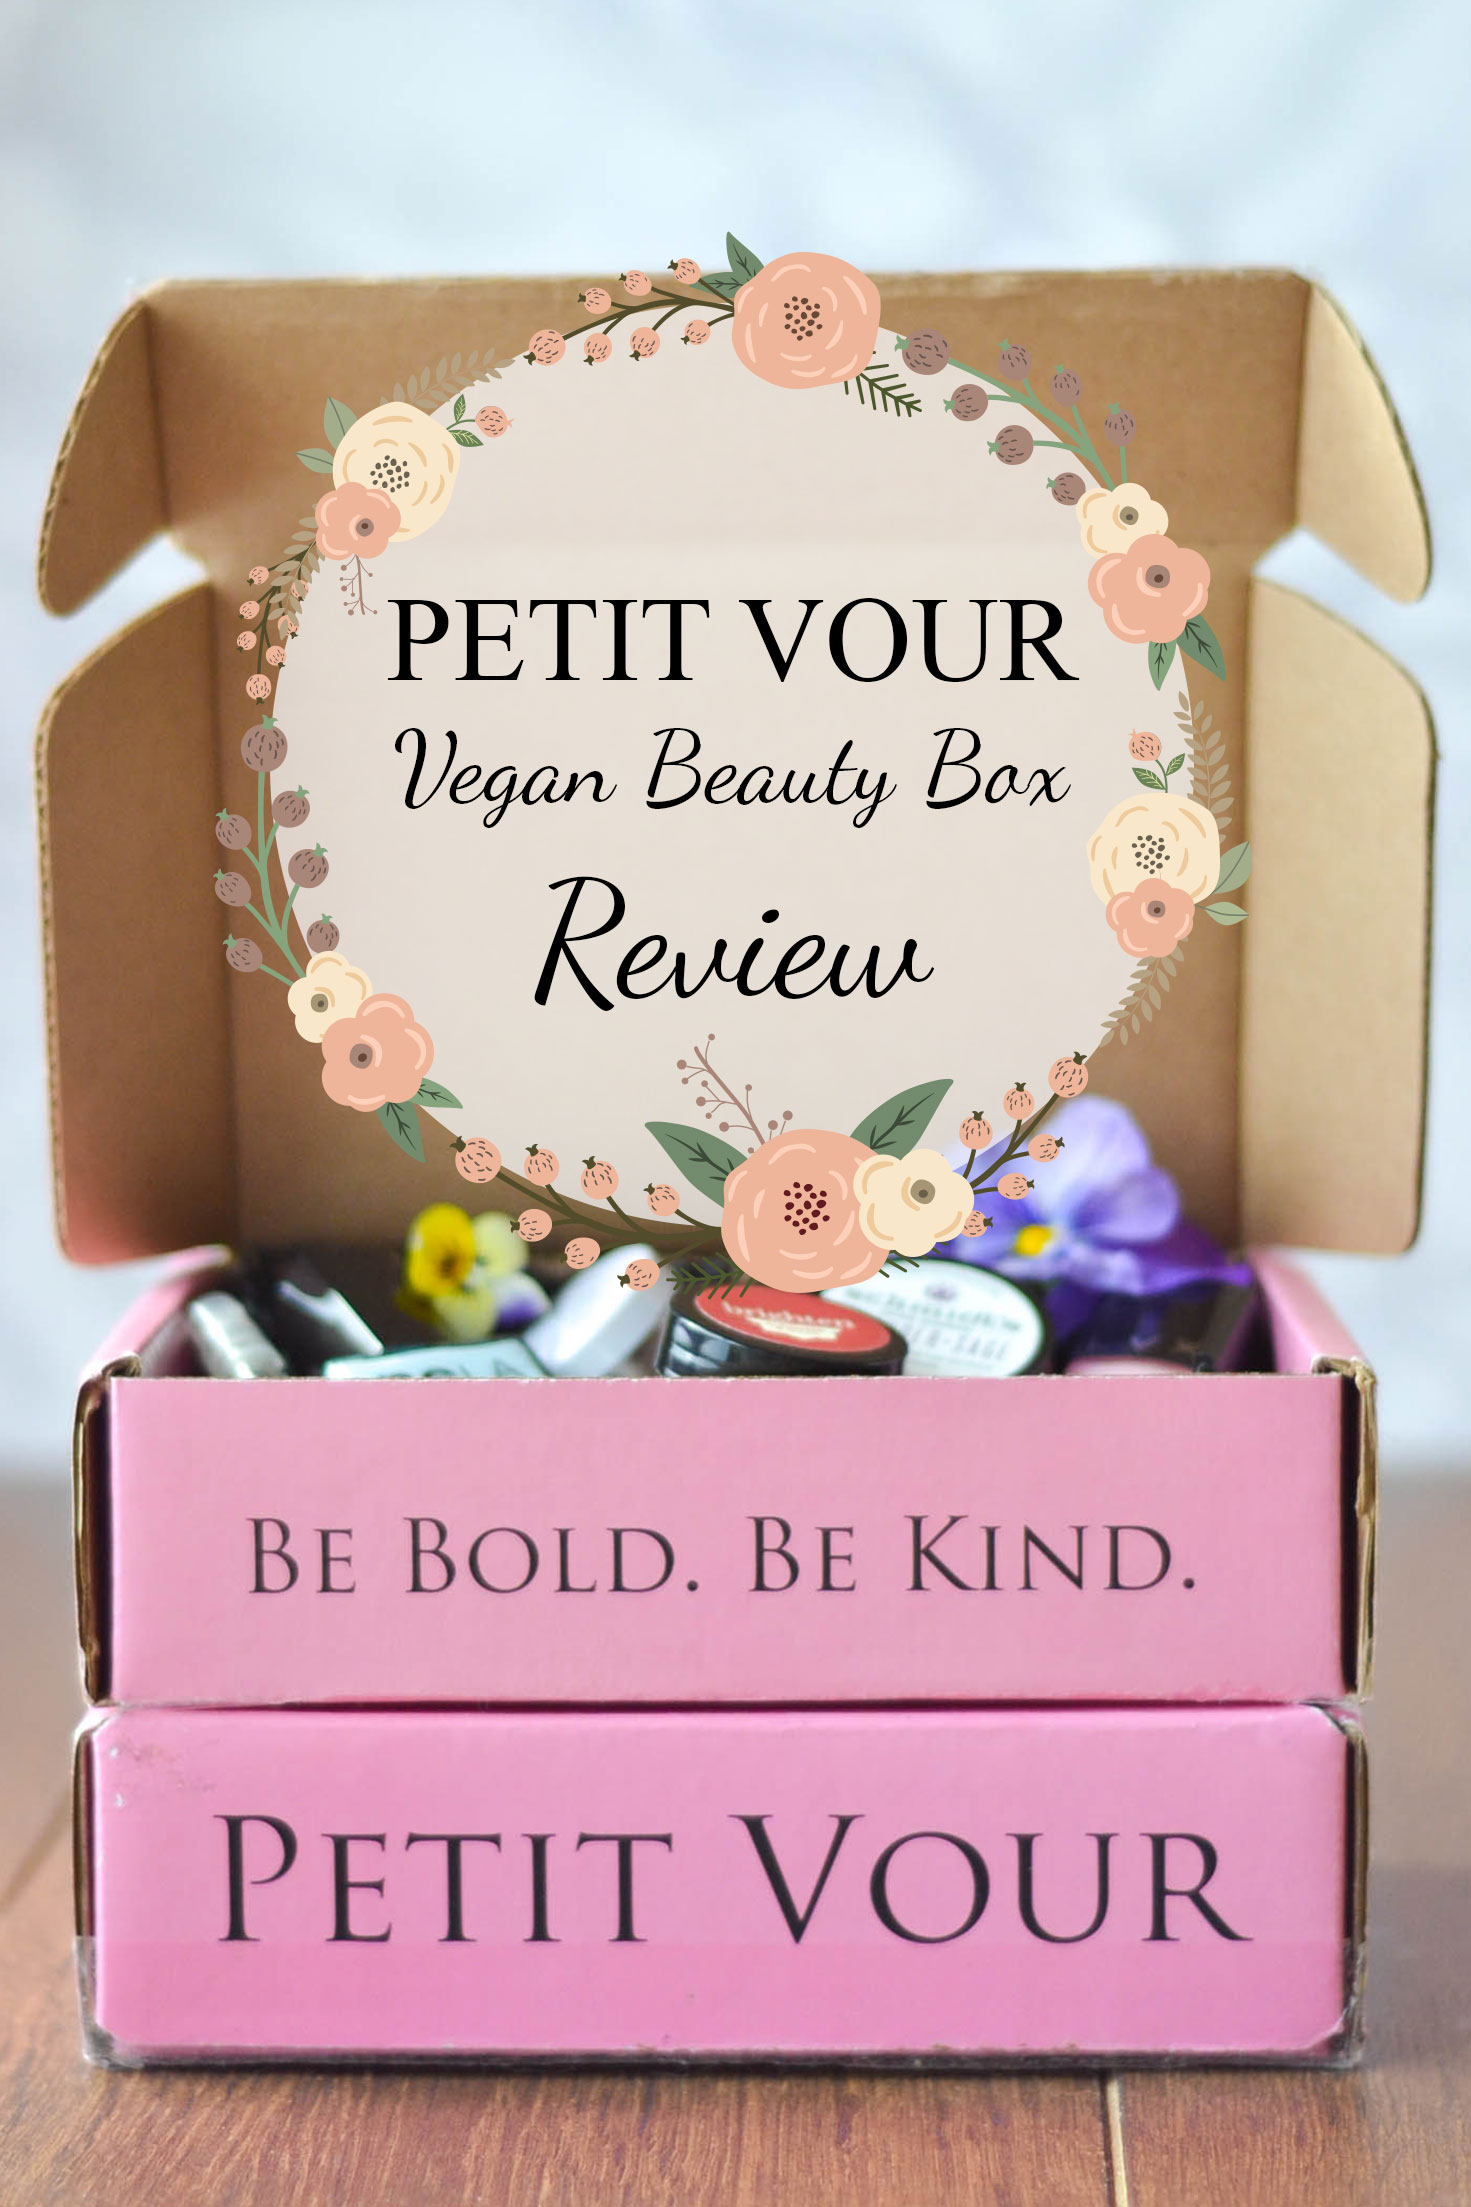 petit vour vegan beauty box review wallflower kitchen. Black Bedroom Furniture Sets. Home Design Ideas